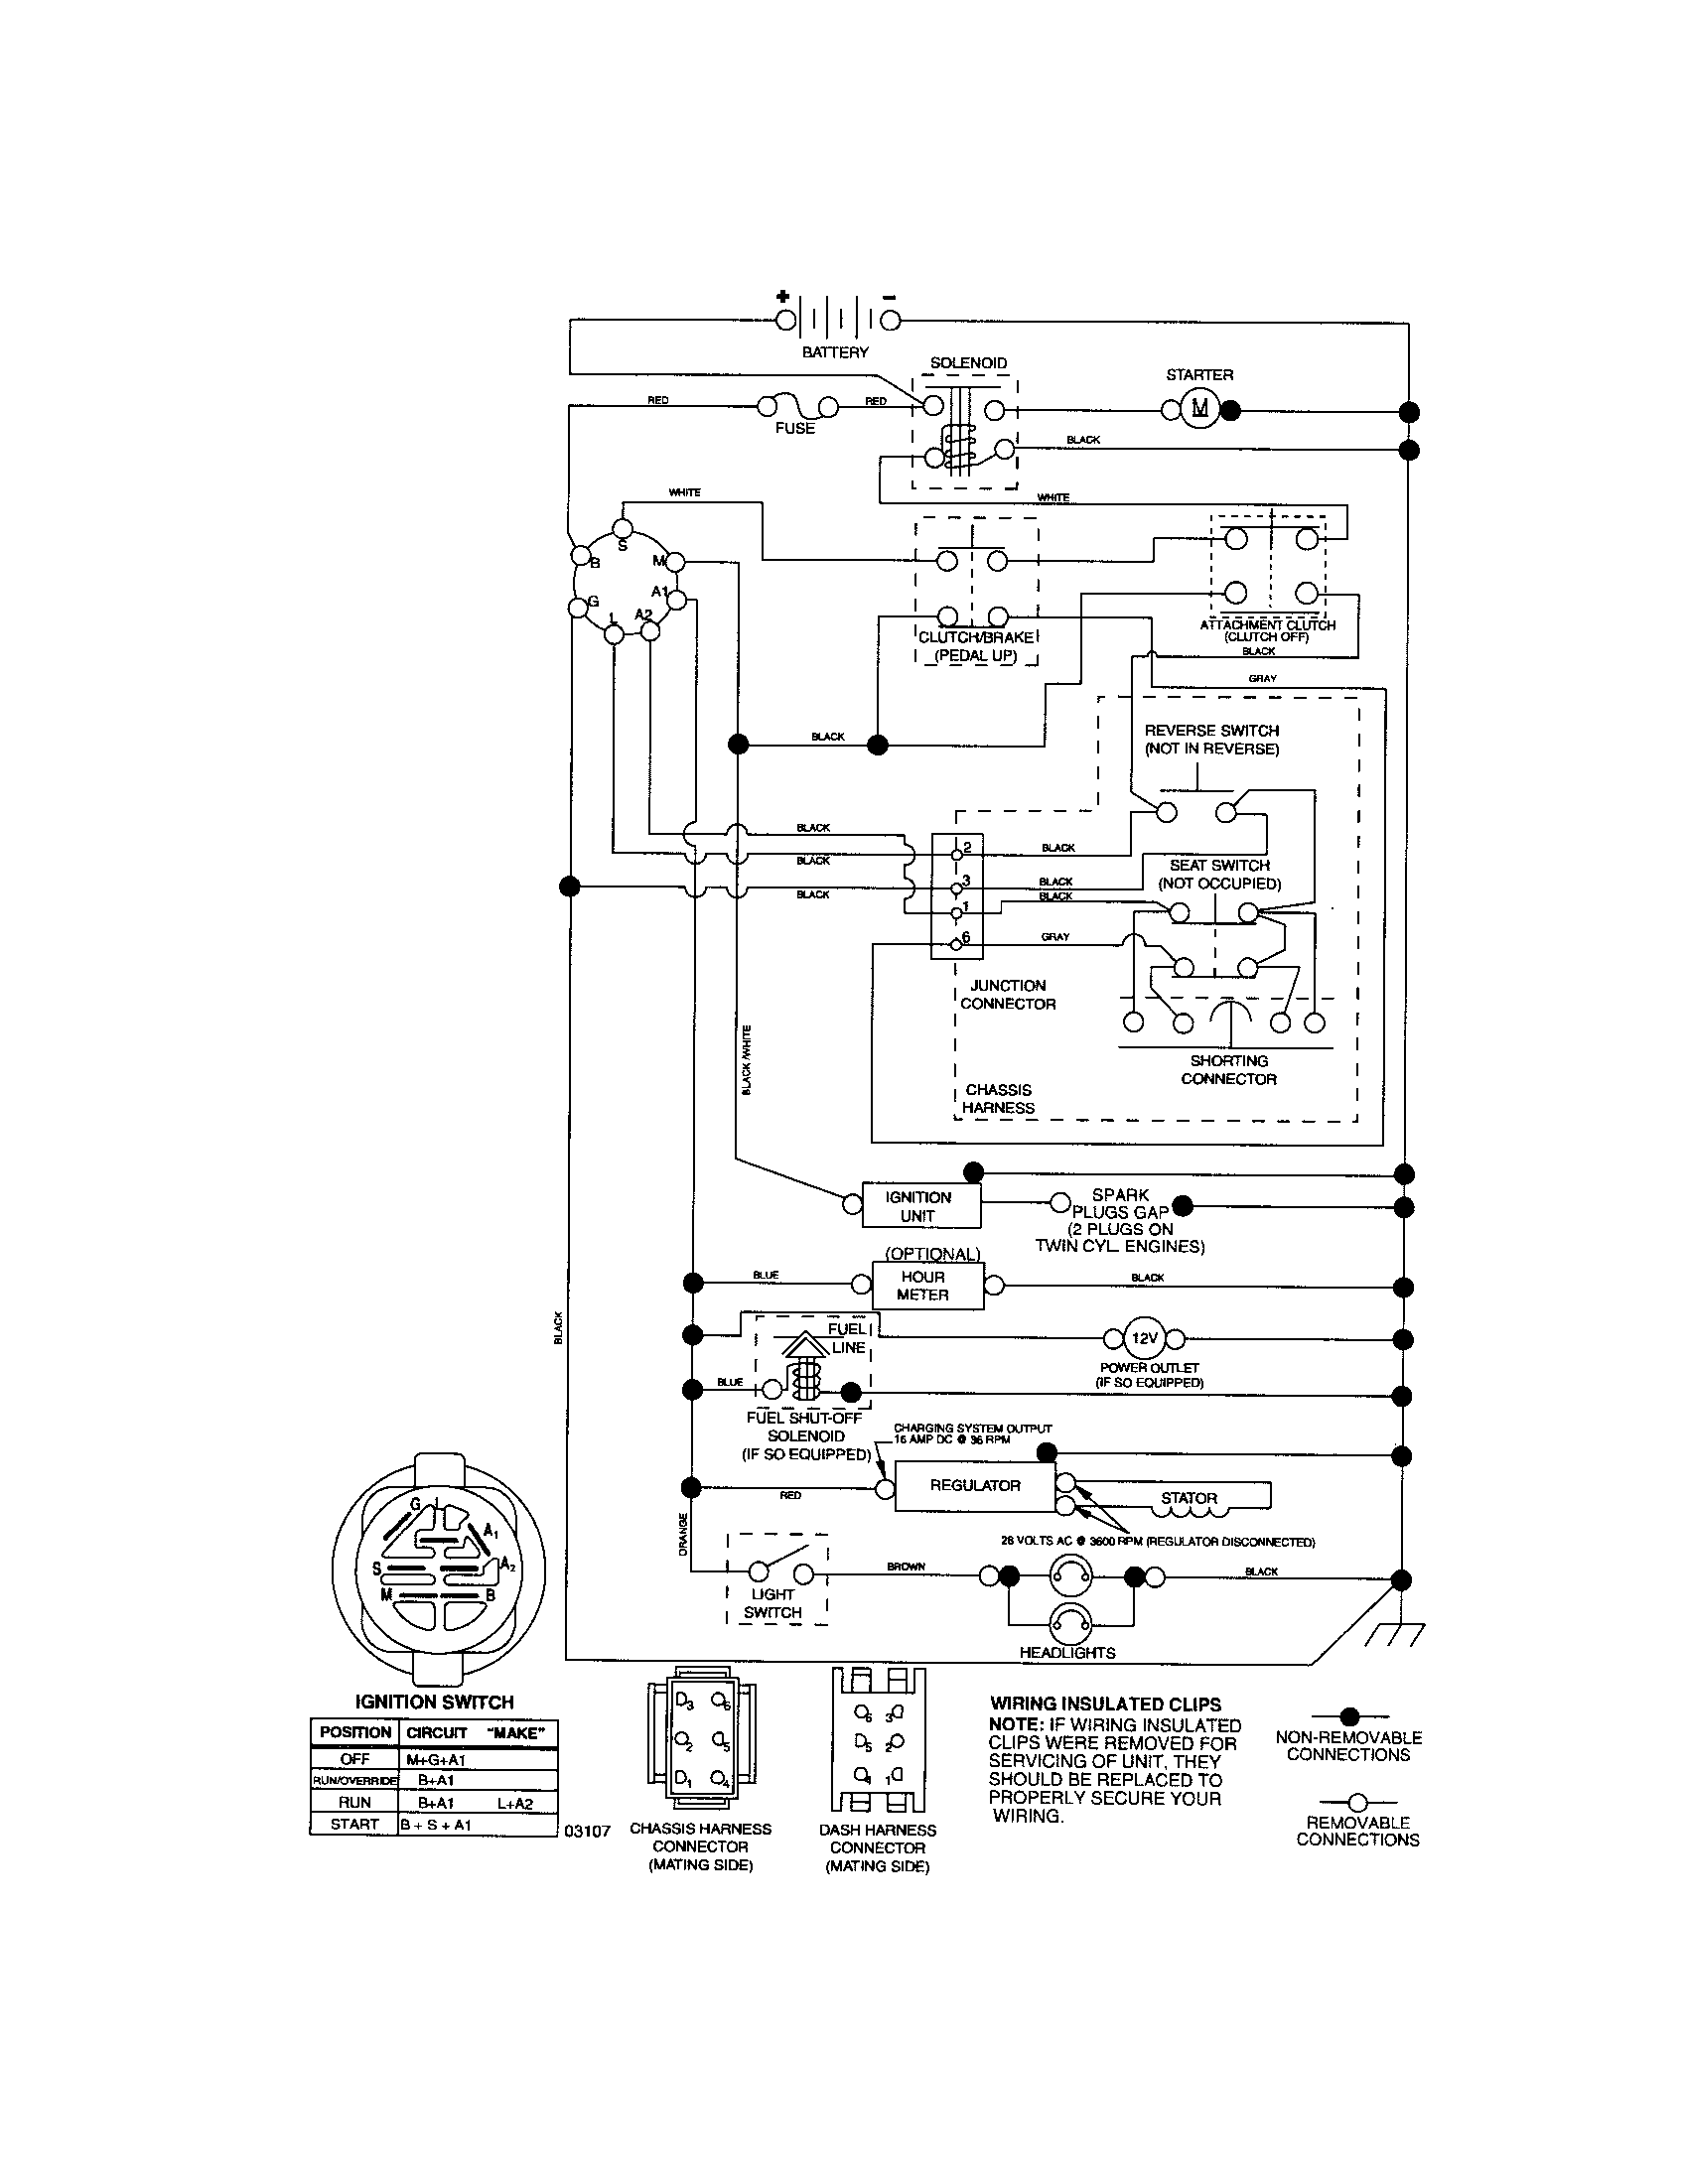 6af5f1447fd13c8443376822ddc1e105 craftsman riding mower electrical diagram wiring diagram wiring diagram for craftsman lt1000 at bayanpartner.co